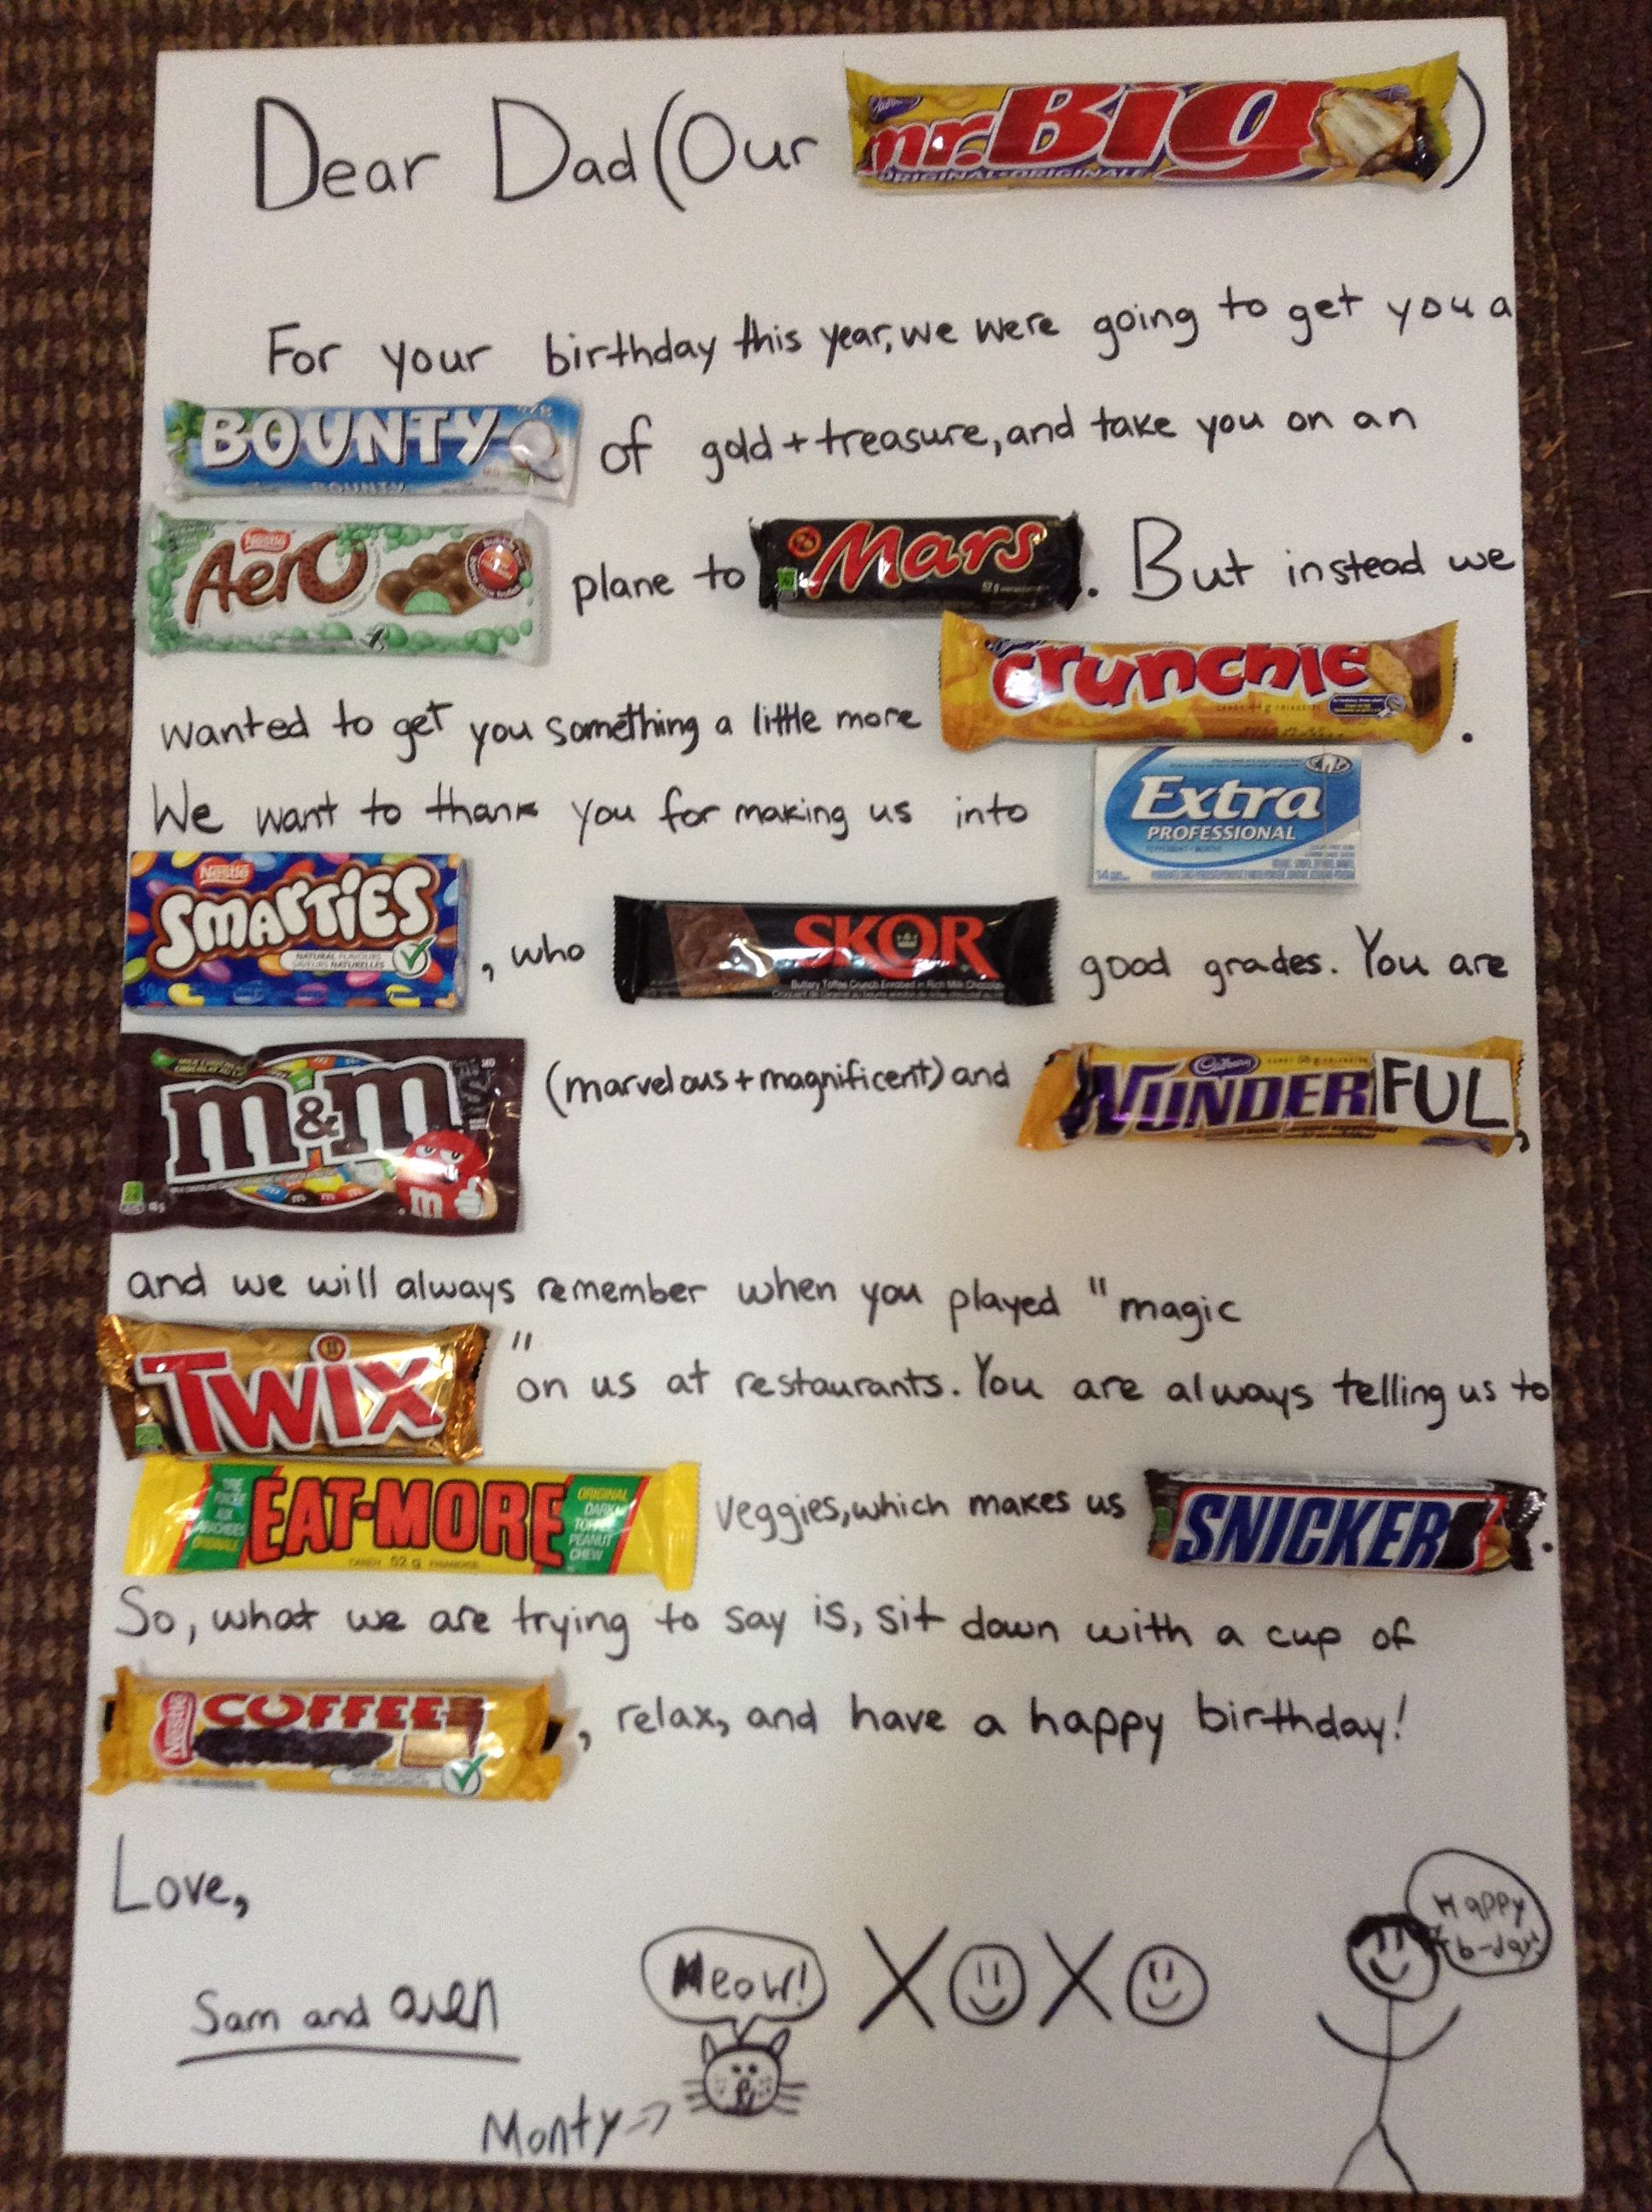 Easy Diy Birthday Gifts For Dad Dad 39s Birthday Gift Quick And Easy Great Homemade Present